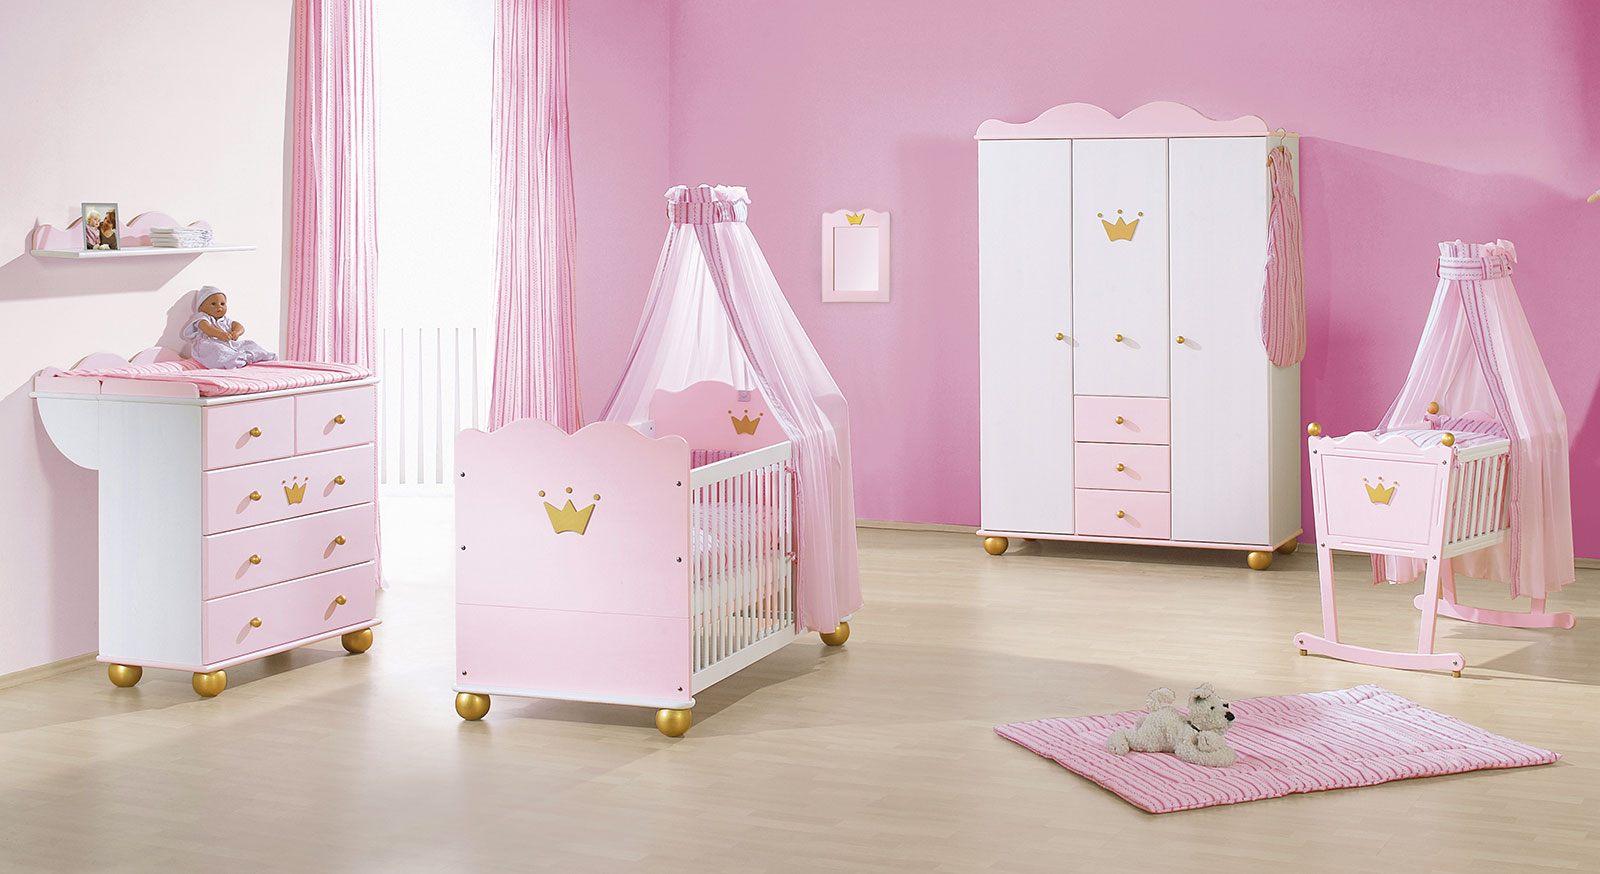 rosa prinzessinnen babyzimmer online kaufen prinzessin. Black Bedroom Furniture Sets. Home Design Ideas